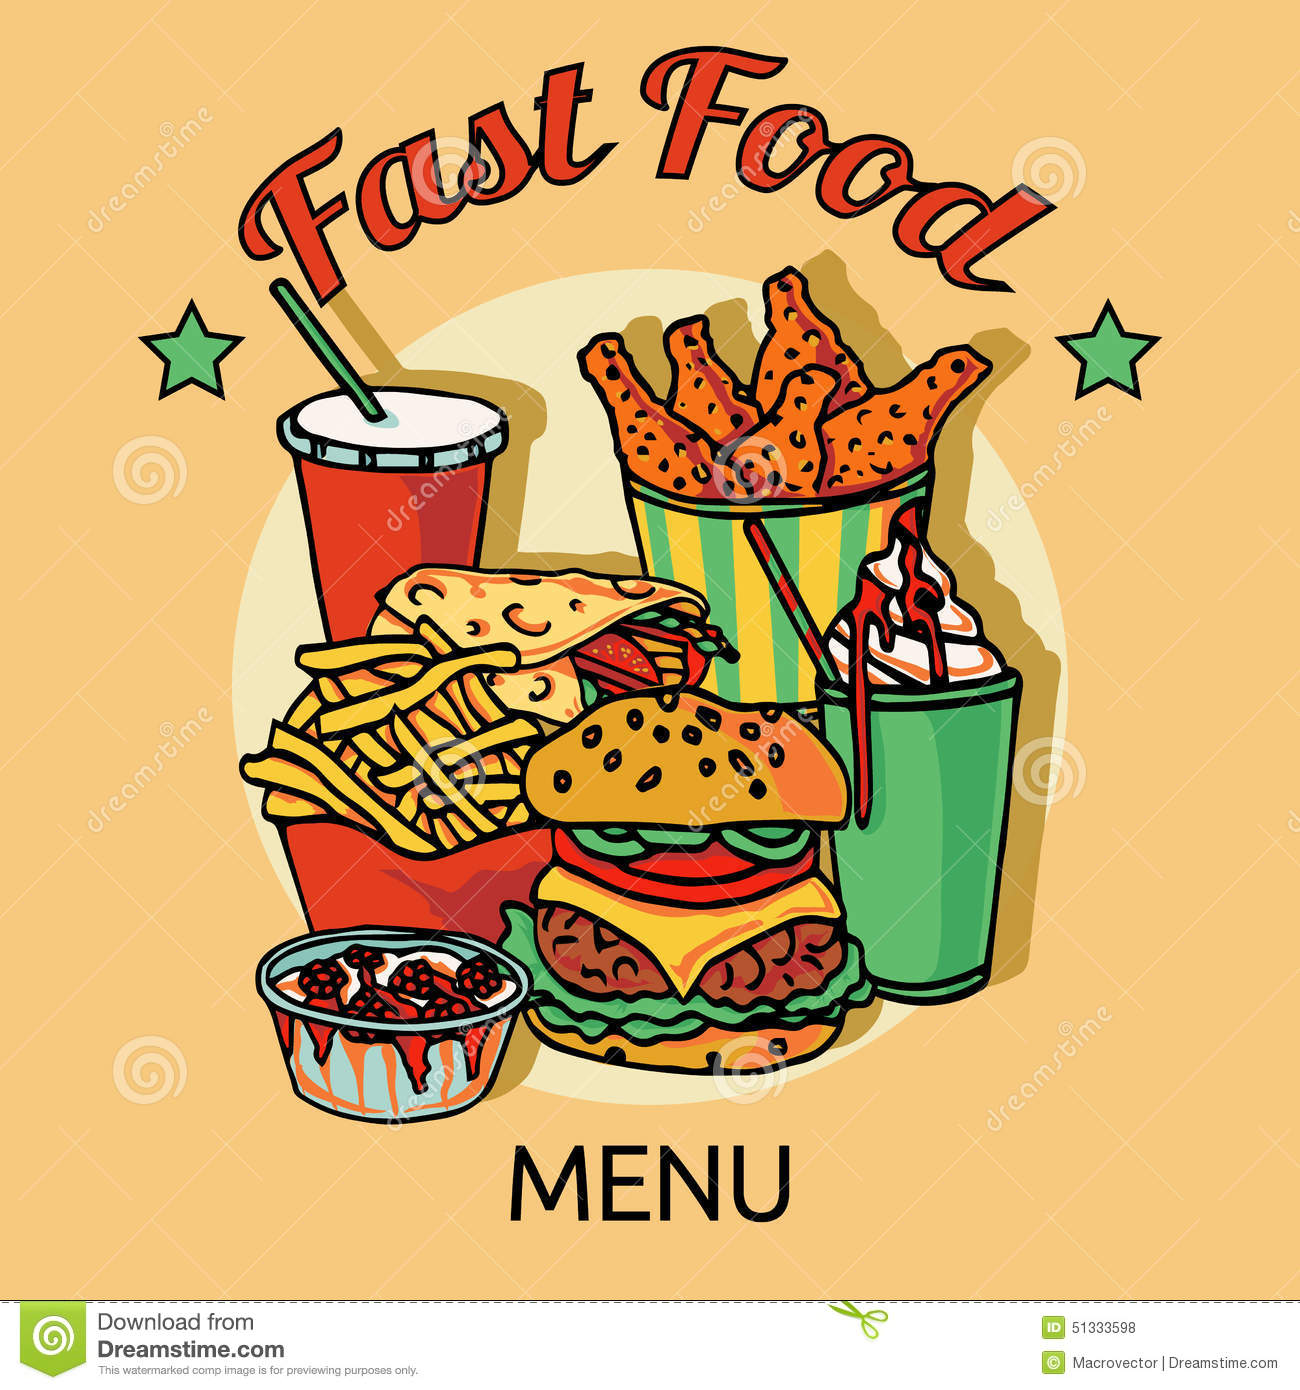 Healthy Menu Fast Food Restaurants